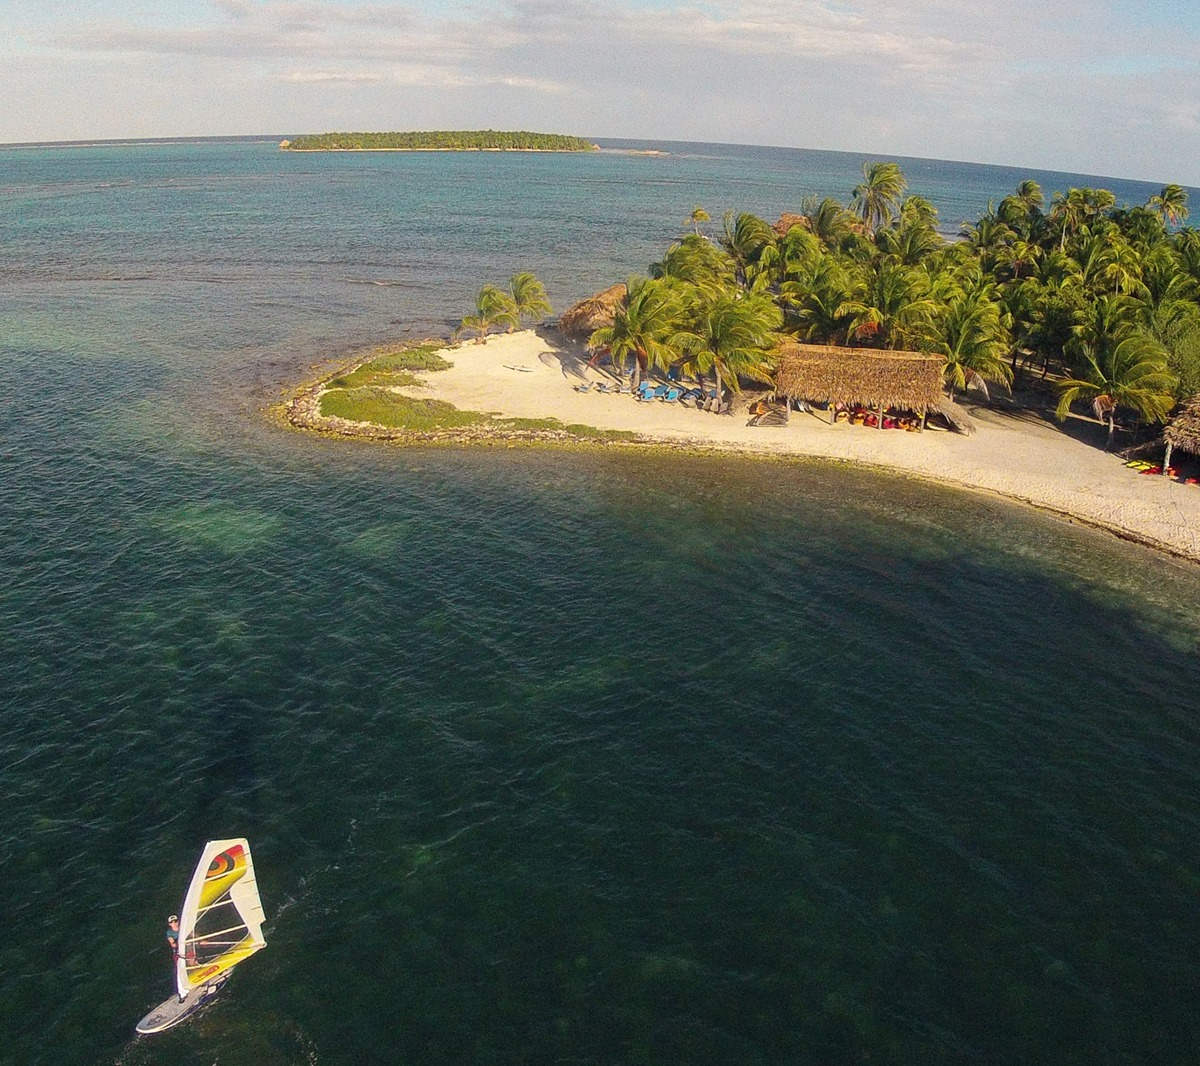 Windsurfing just off our caye